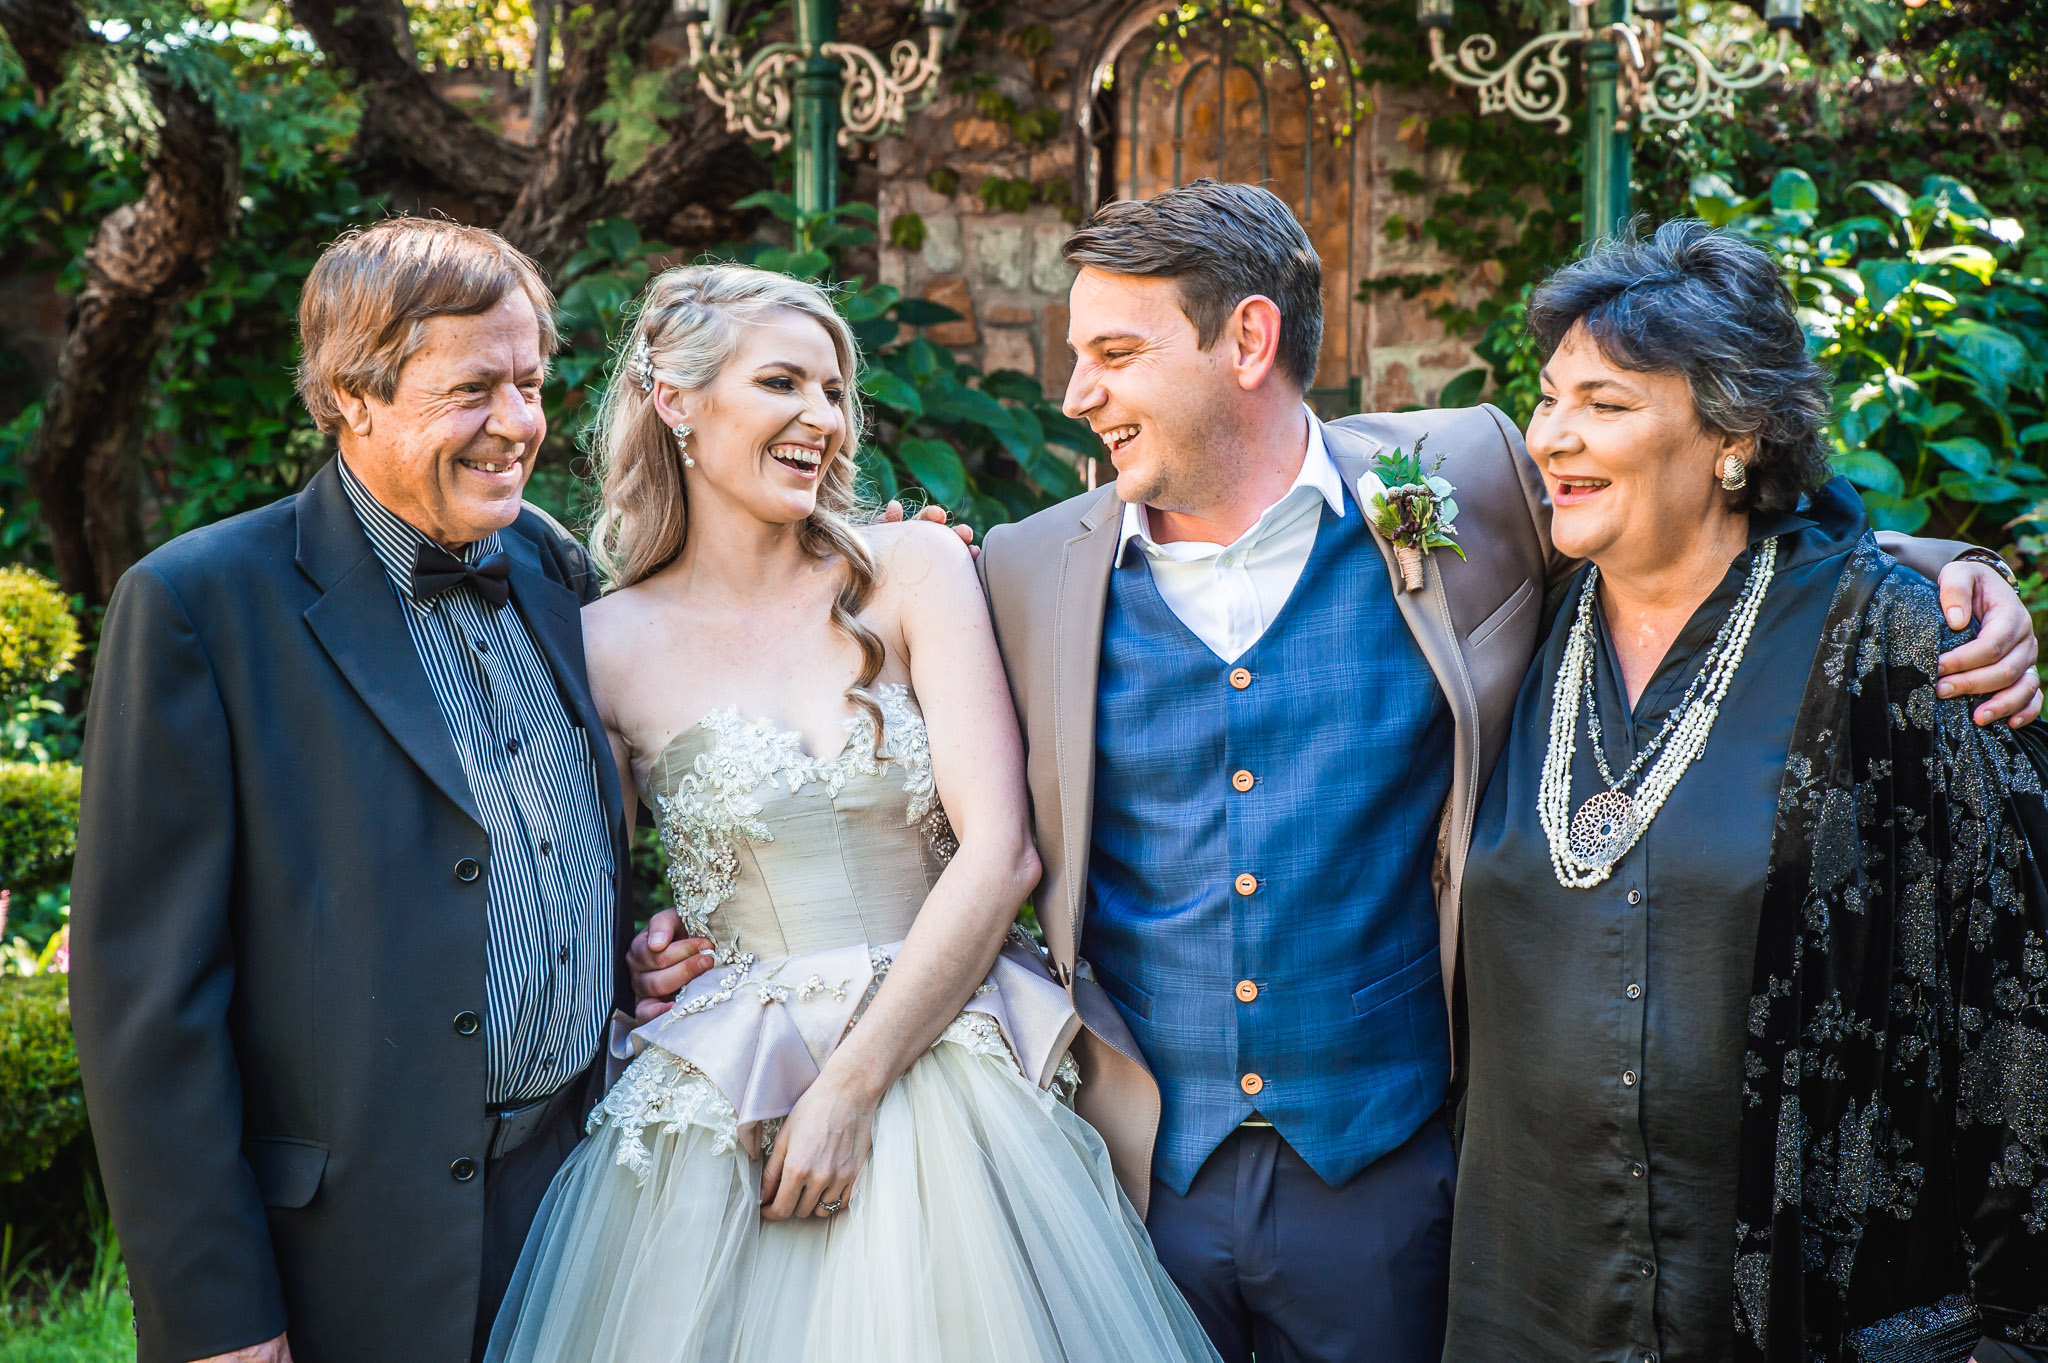 George and Charlene - Shepstone Gardens - Sneak Peak (29 of 49).jpg